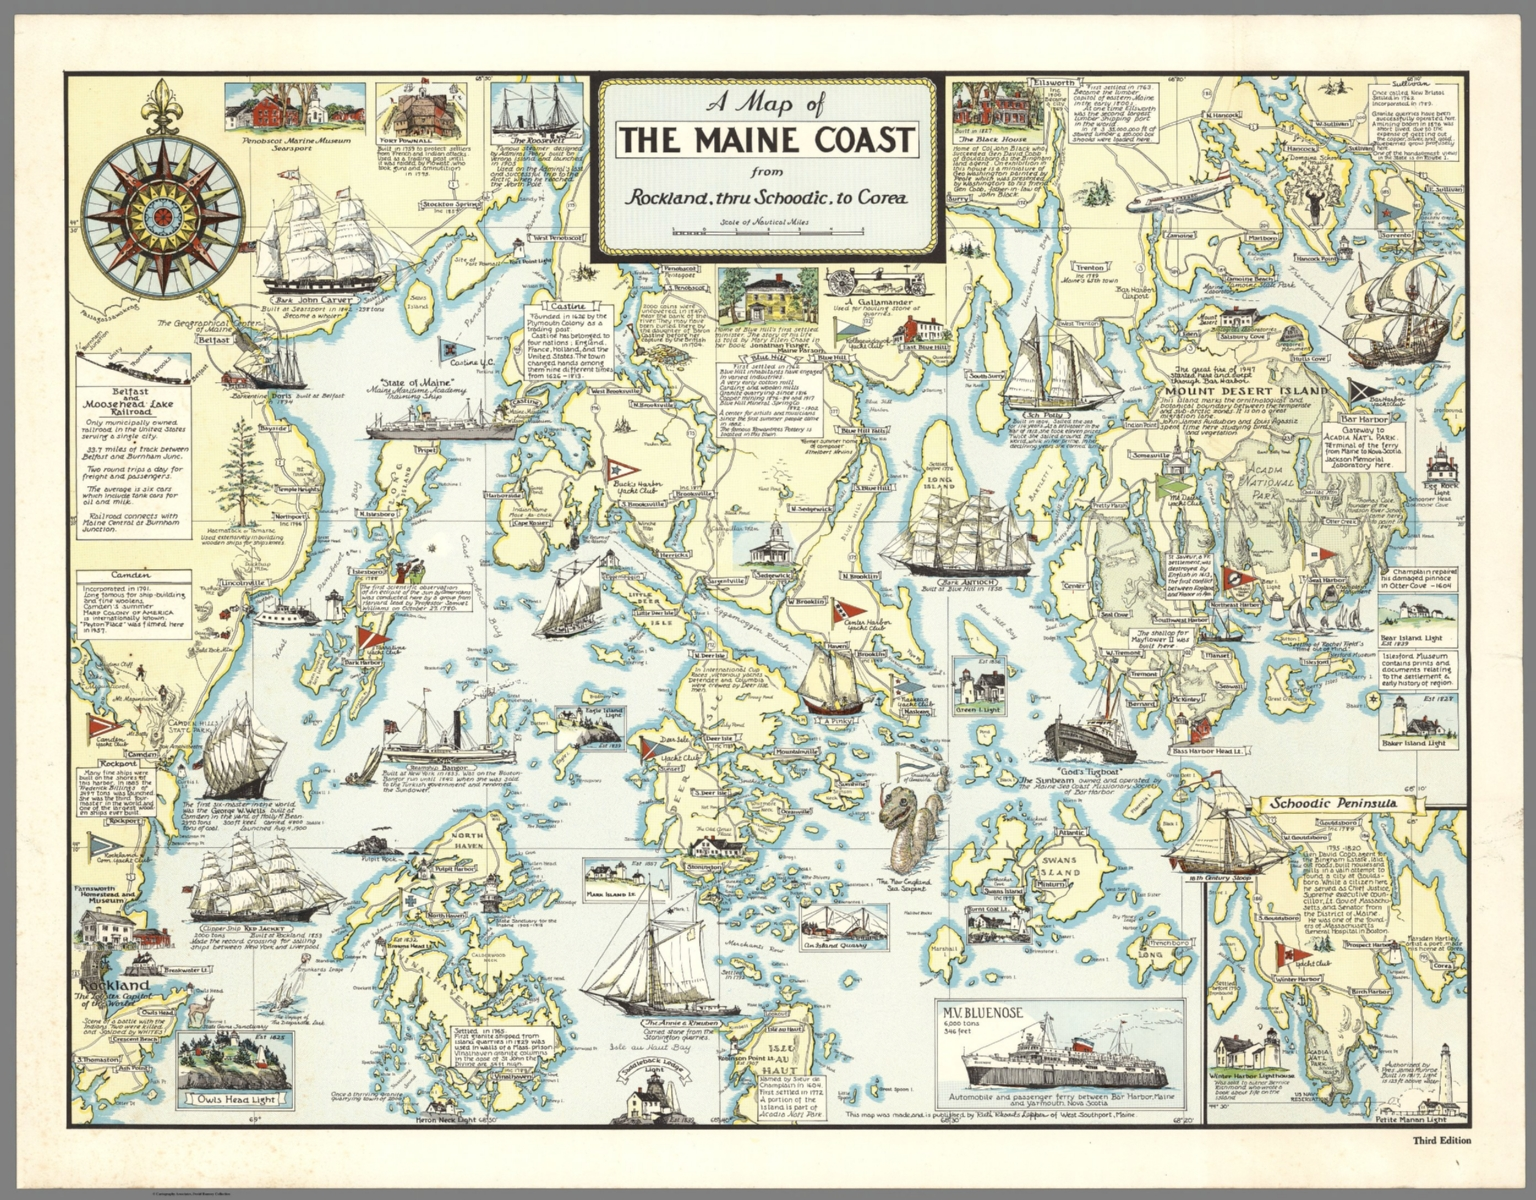 A Map of The Maine Coast from Rockland thru Schoodic to Corea